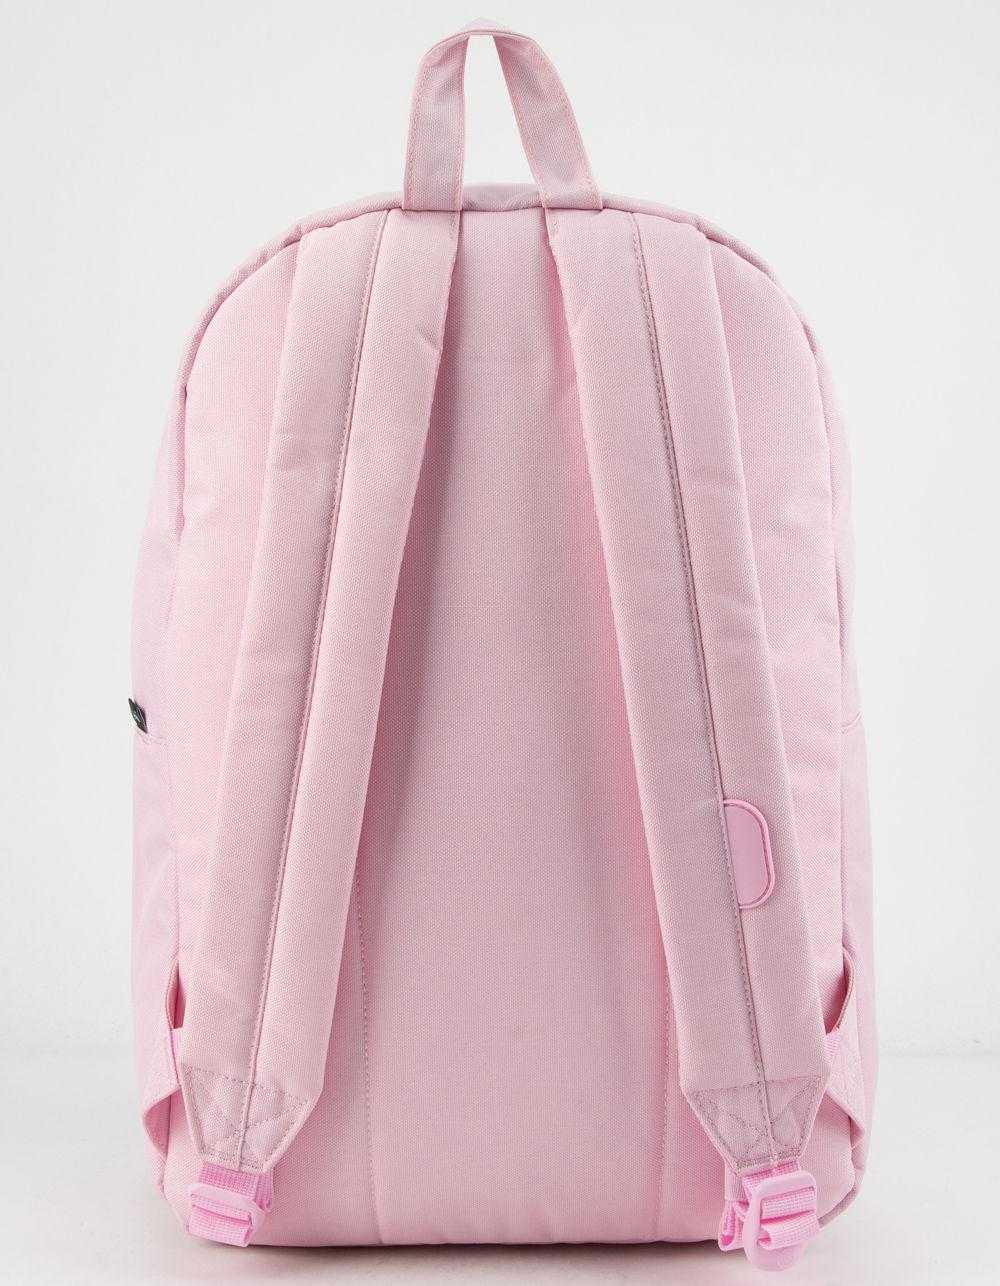 648aeb5f110d Lyst - Herschel Supply Co. . Heritage Pink Lady Crosshatch Backpack ...